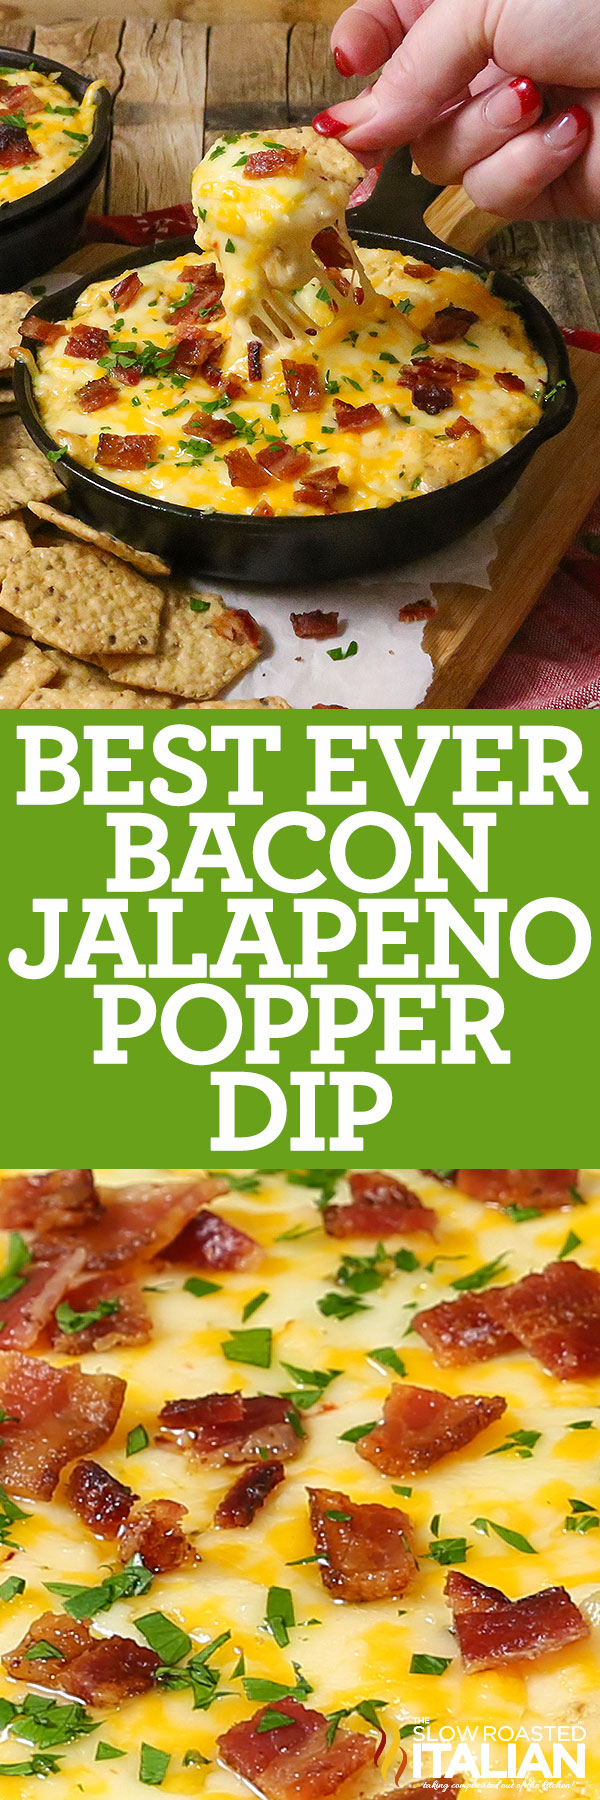 titled image for Pinterest (and shown): best ever jalapeno popper dip